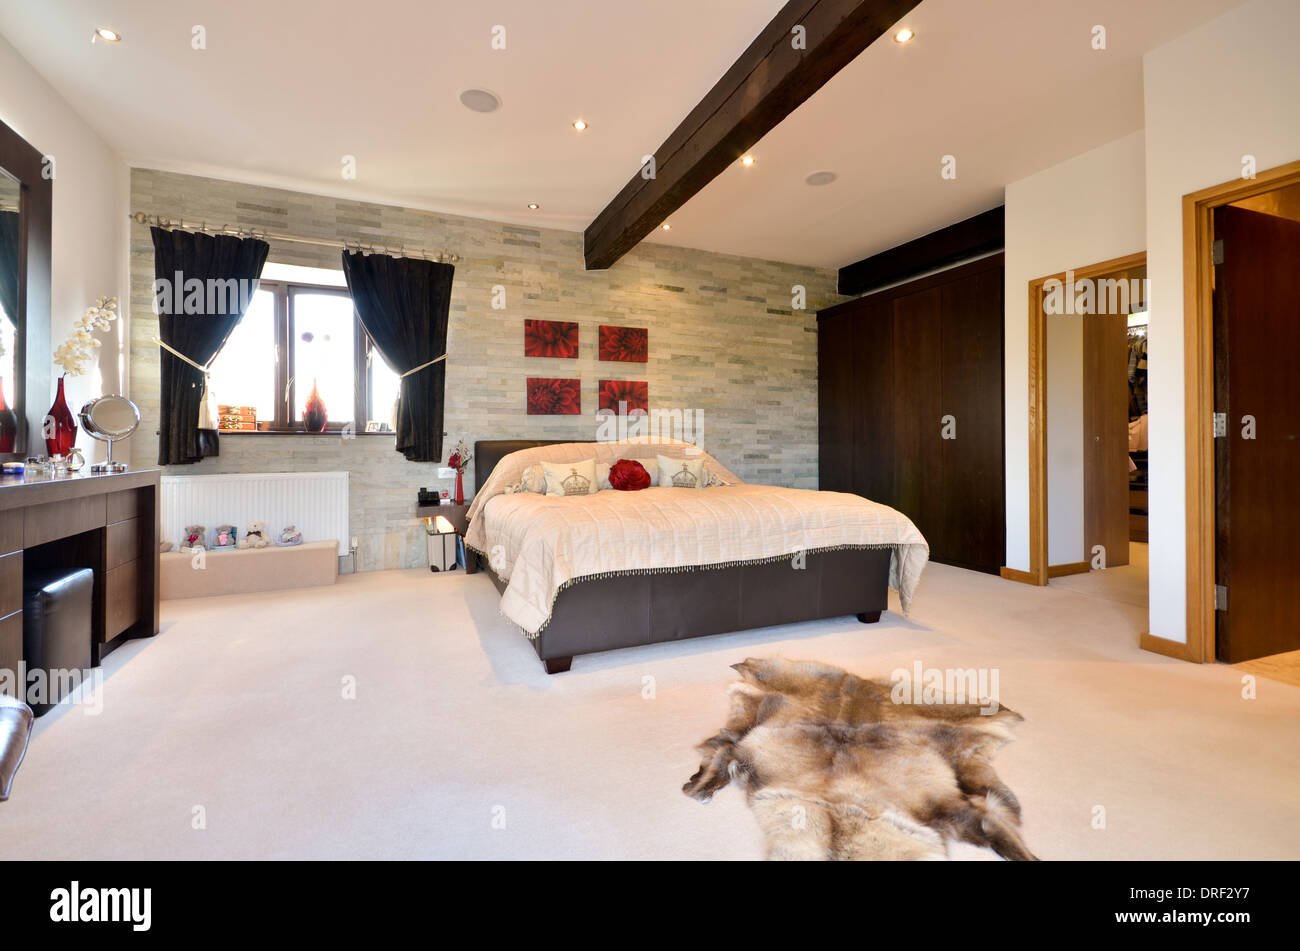 Stylish master bedroom with ensuite and dressing room stock photo royalty free image 66099803 Master bedroom ensuite and wardrobe